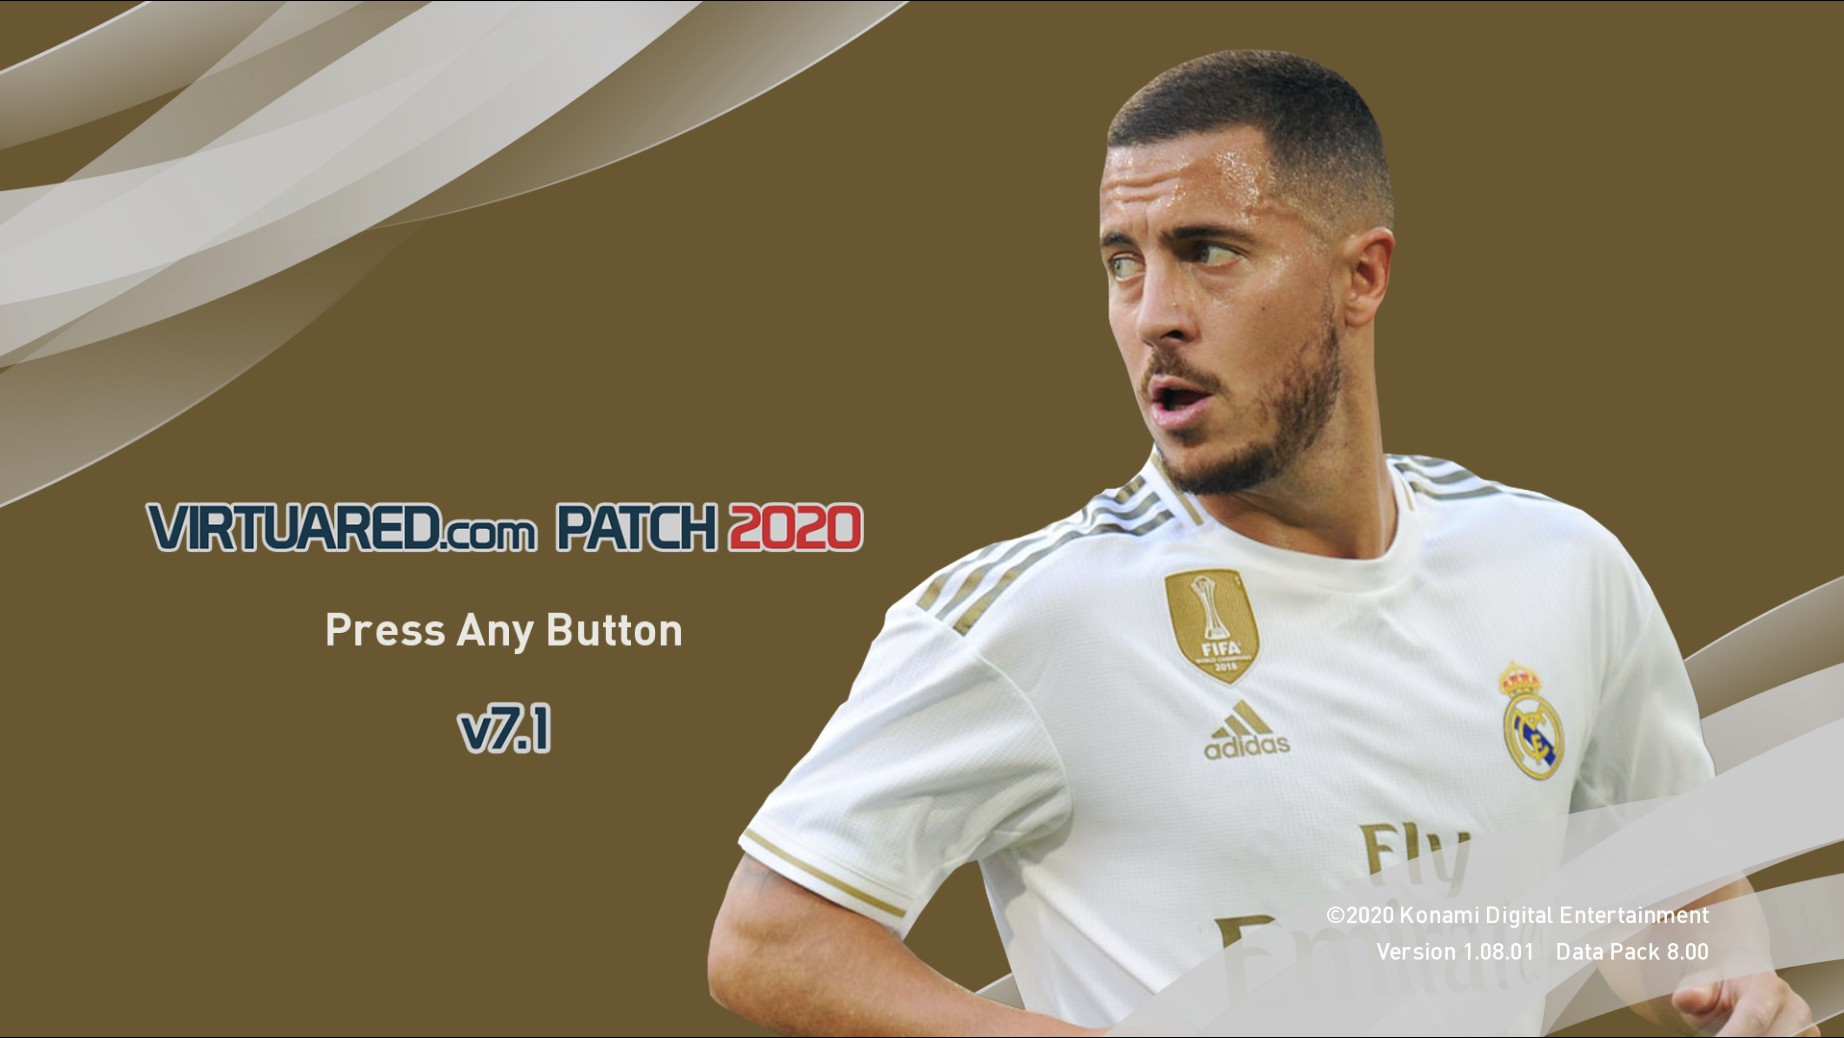 VirtuaRED.com Patch 2020 v7.1 ¡ya disponible!